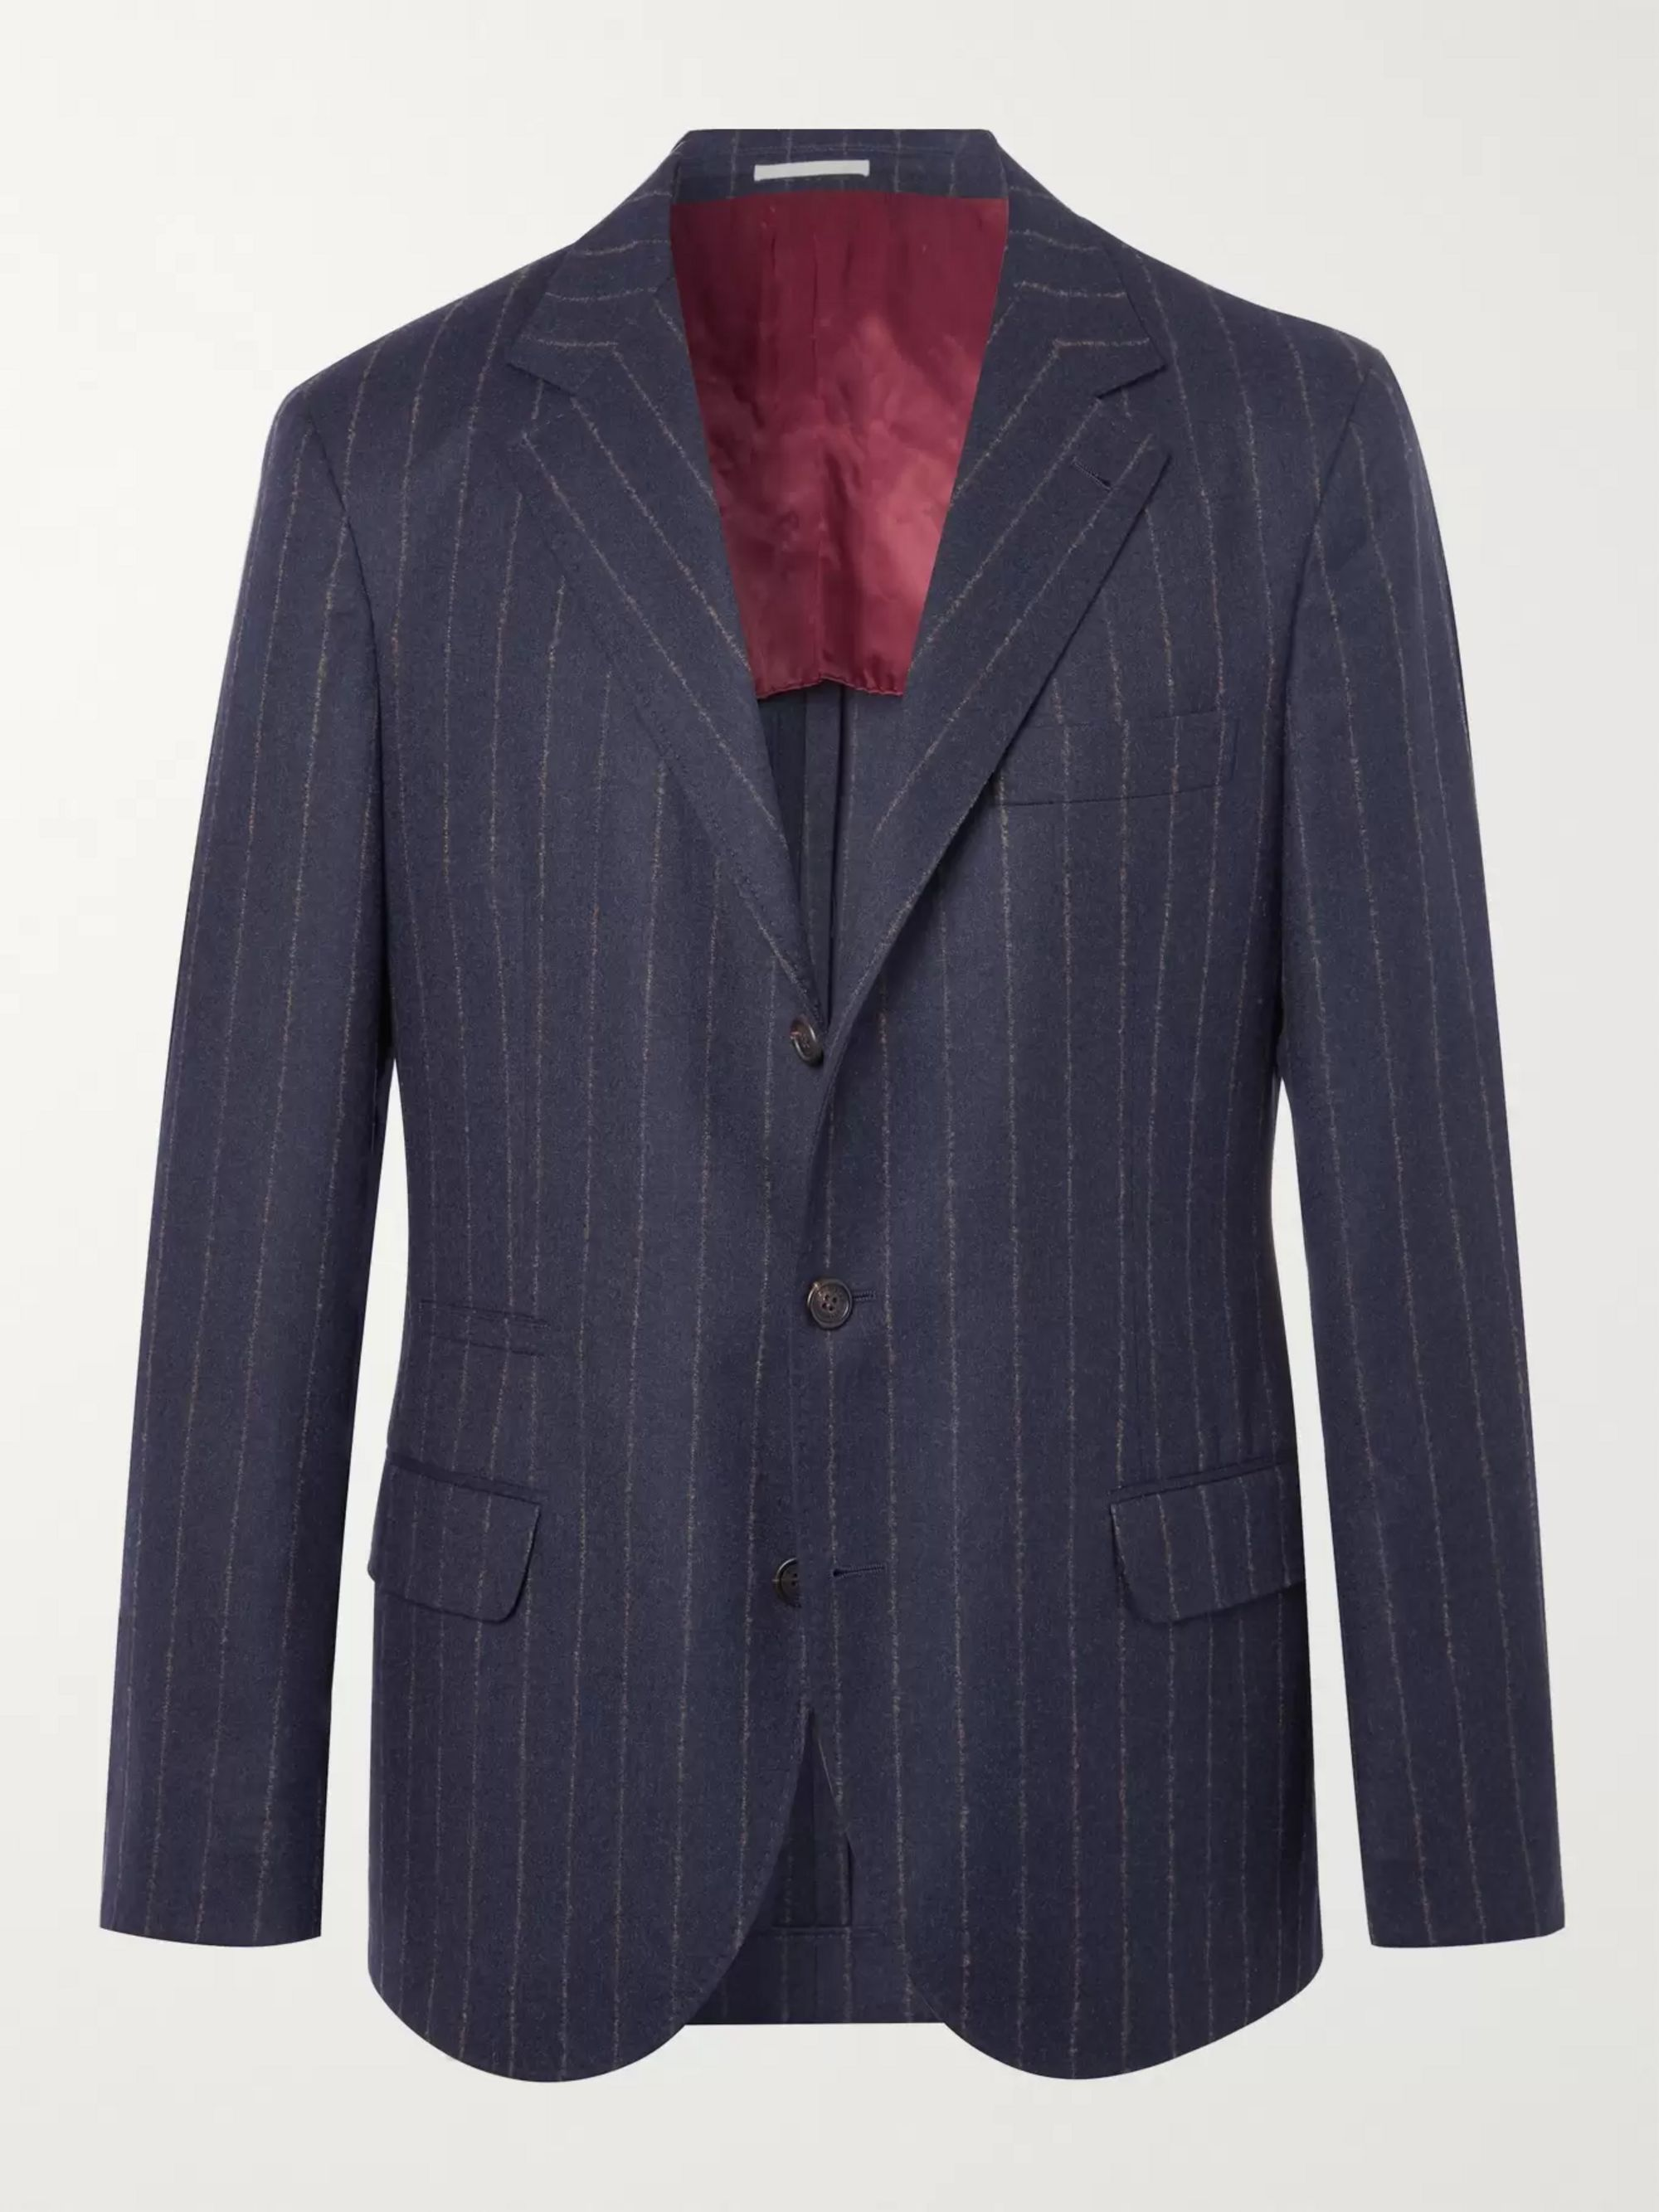 Navy Chalk Striped Wool Suit Jacket